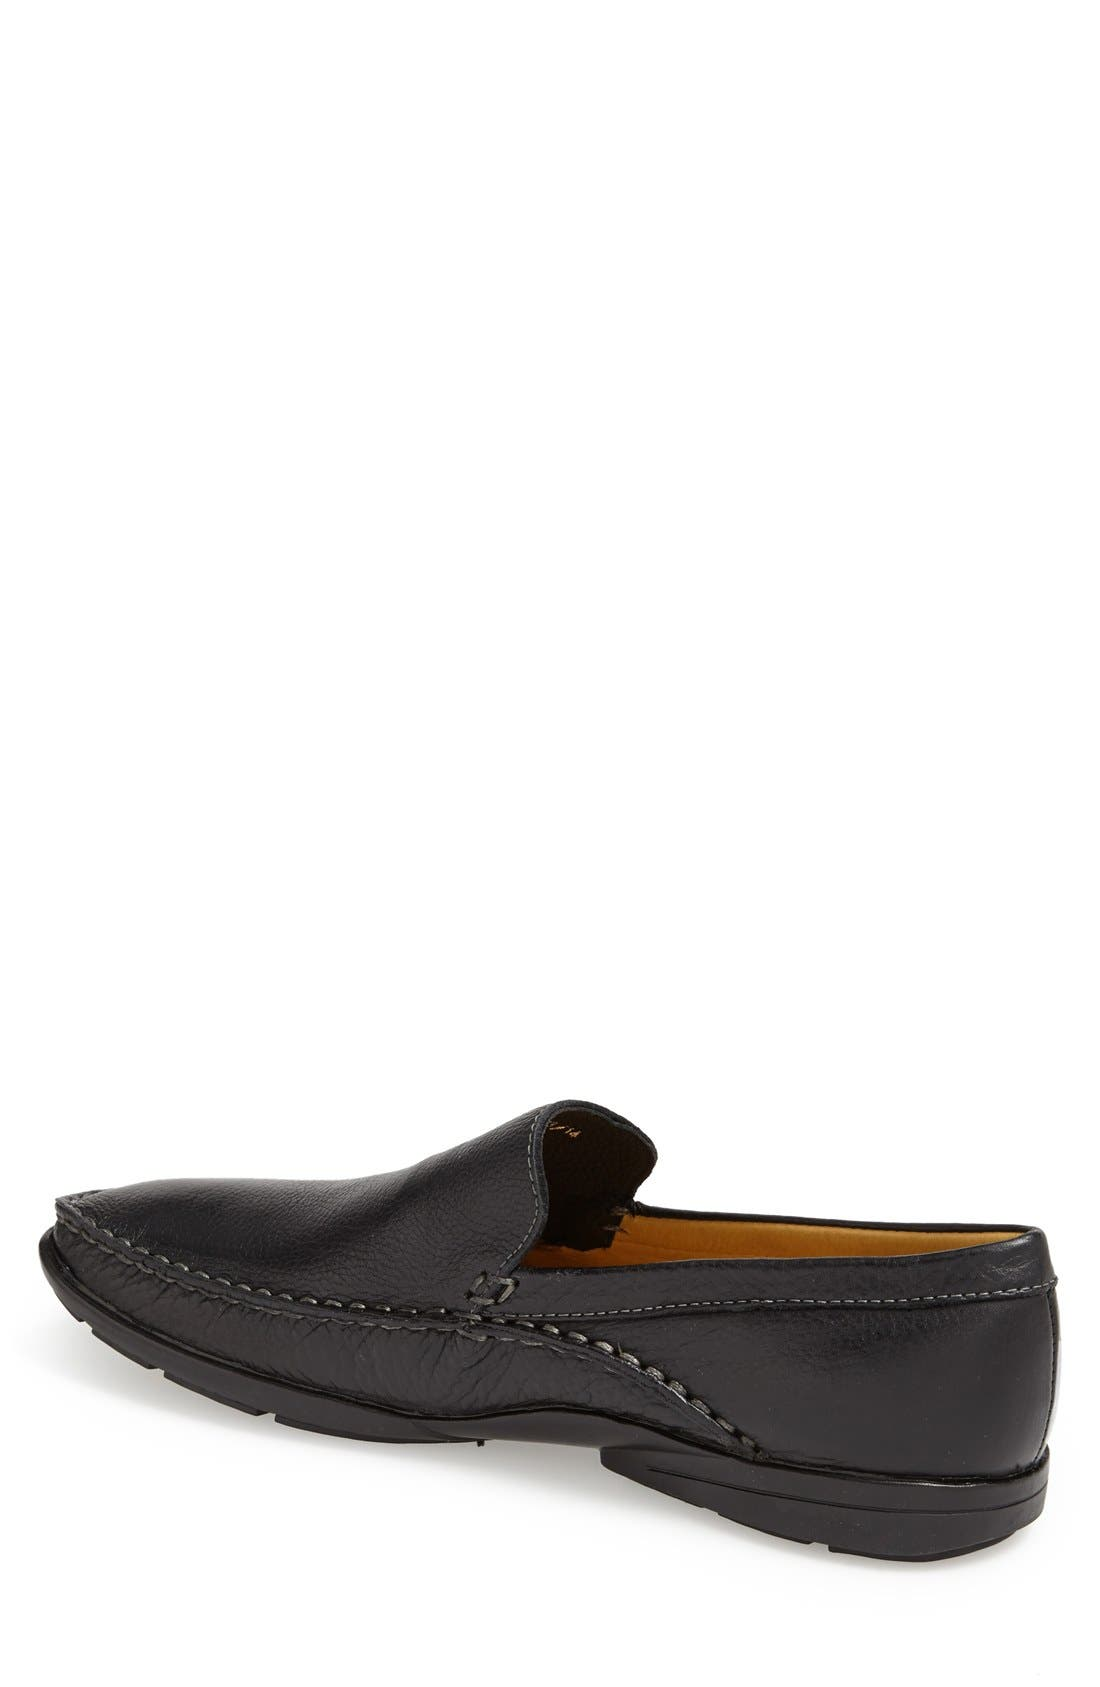 Alternate Image 2  - Sandro Moscoloni 'Dillon' Loafer (Men)